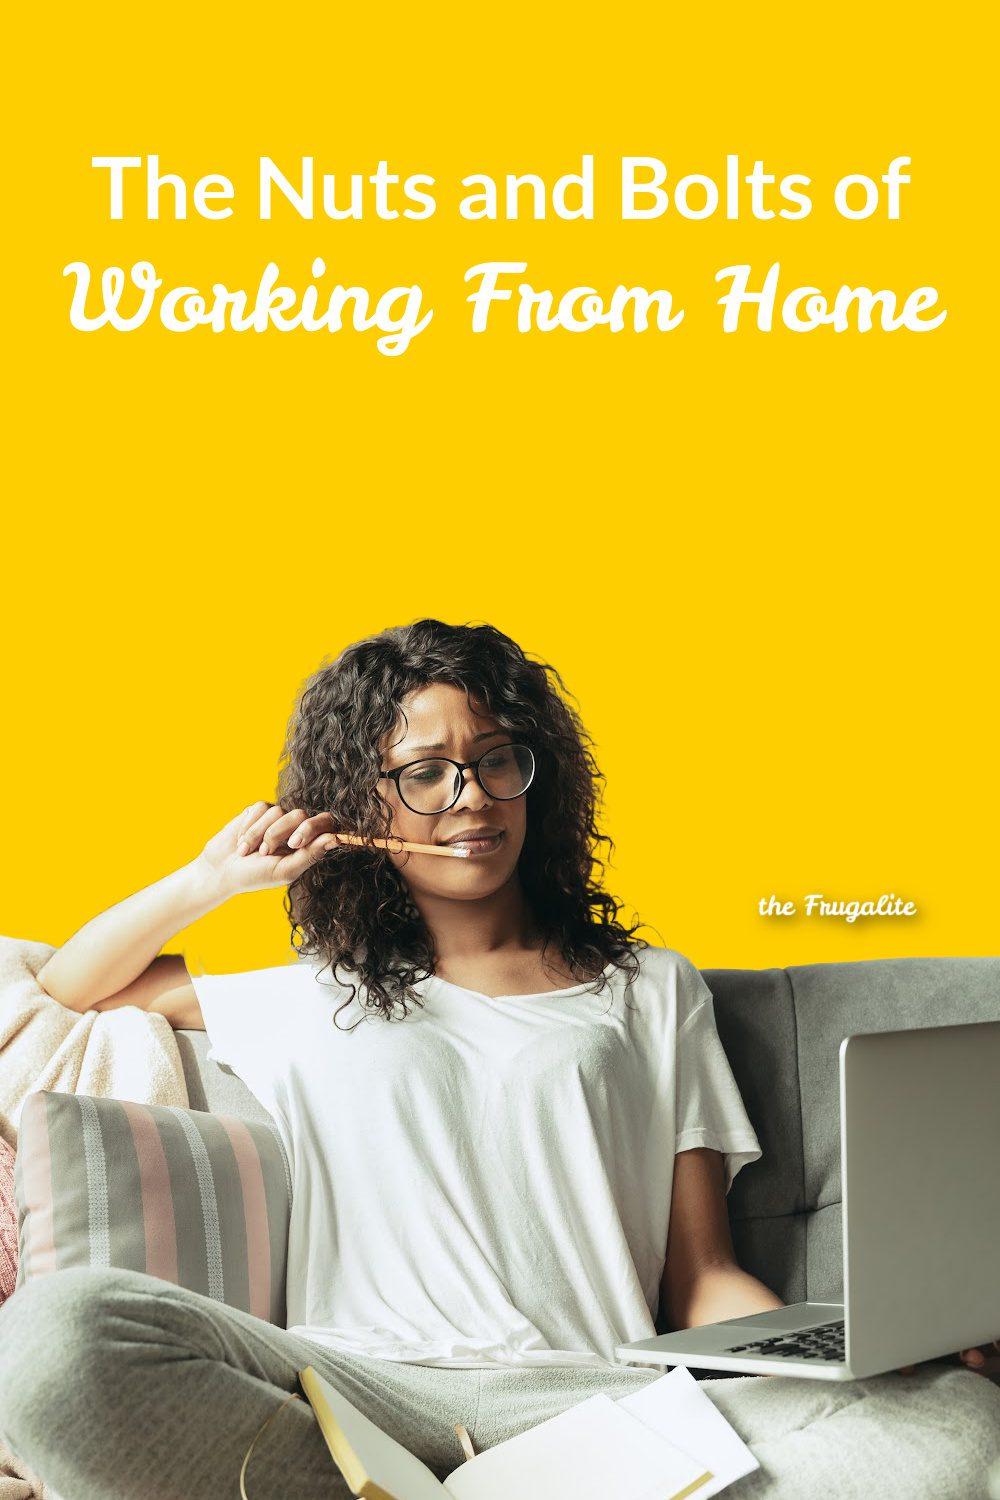 The Nuts and Bolts of Working From Home